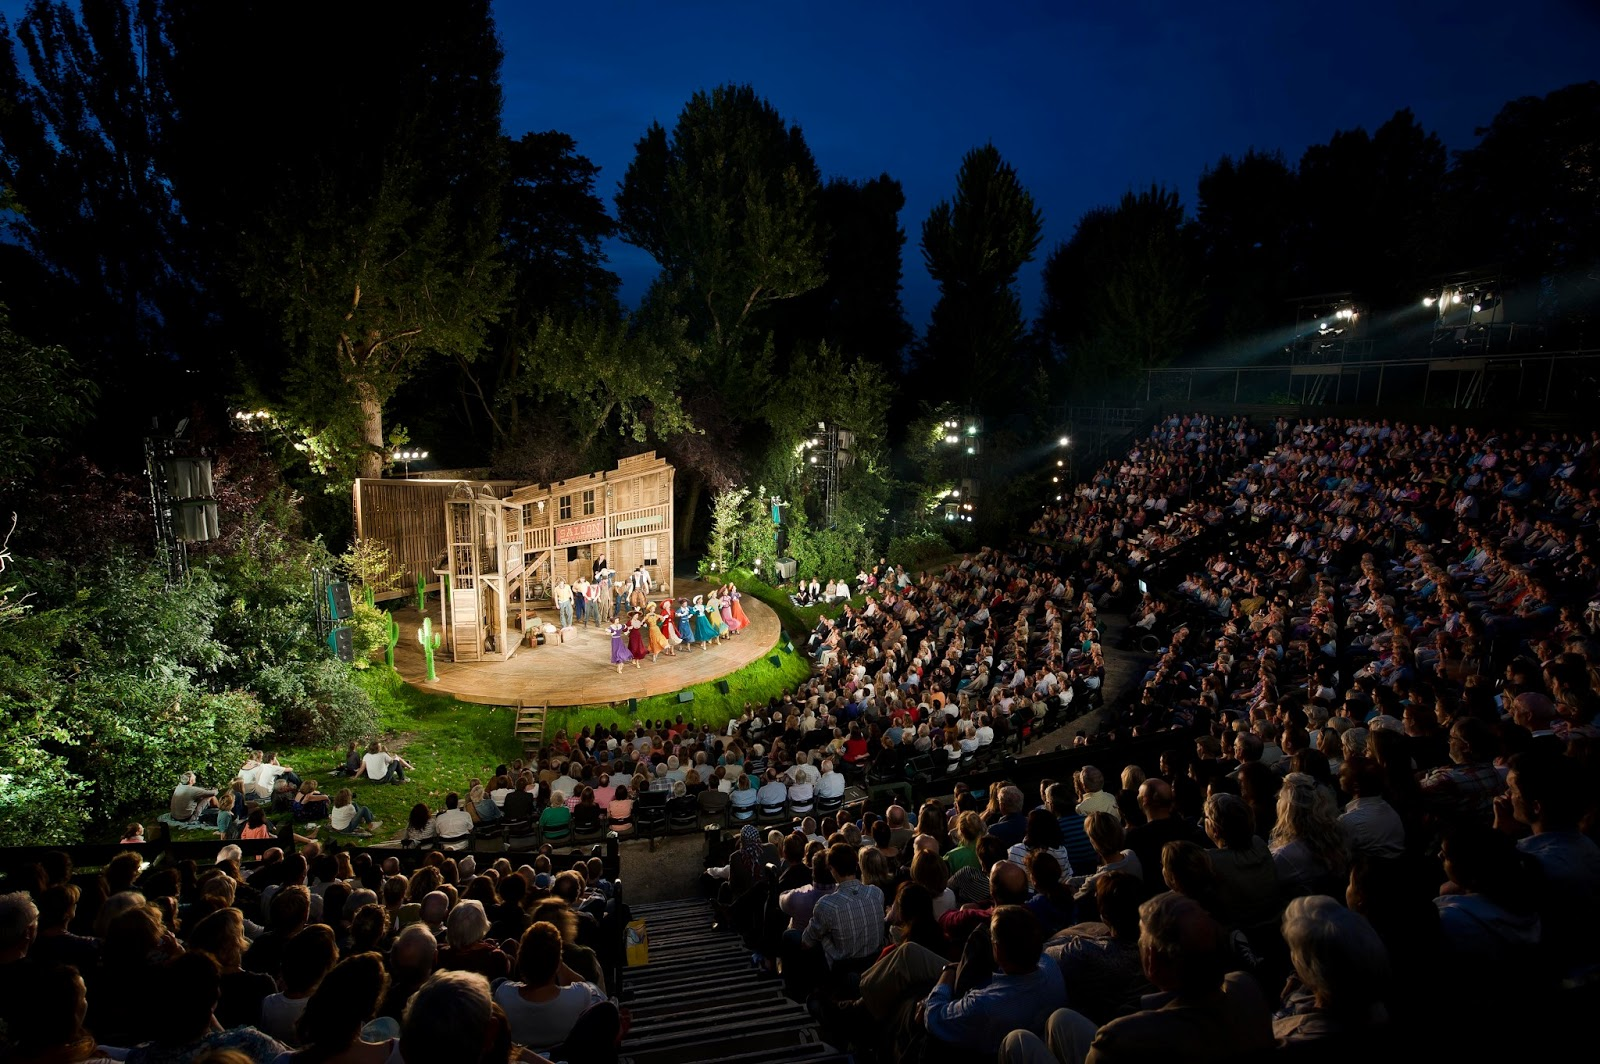 Stage Hire For Crazy For You Regents Park